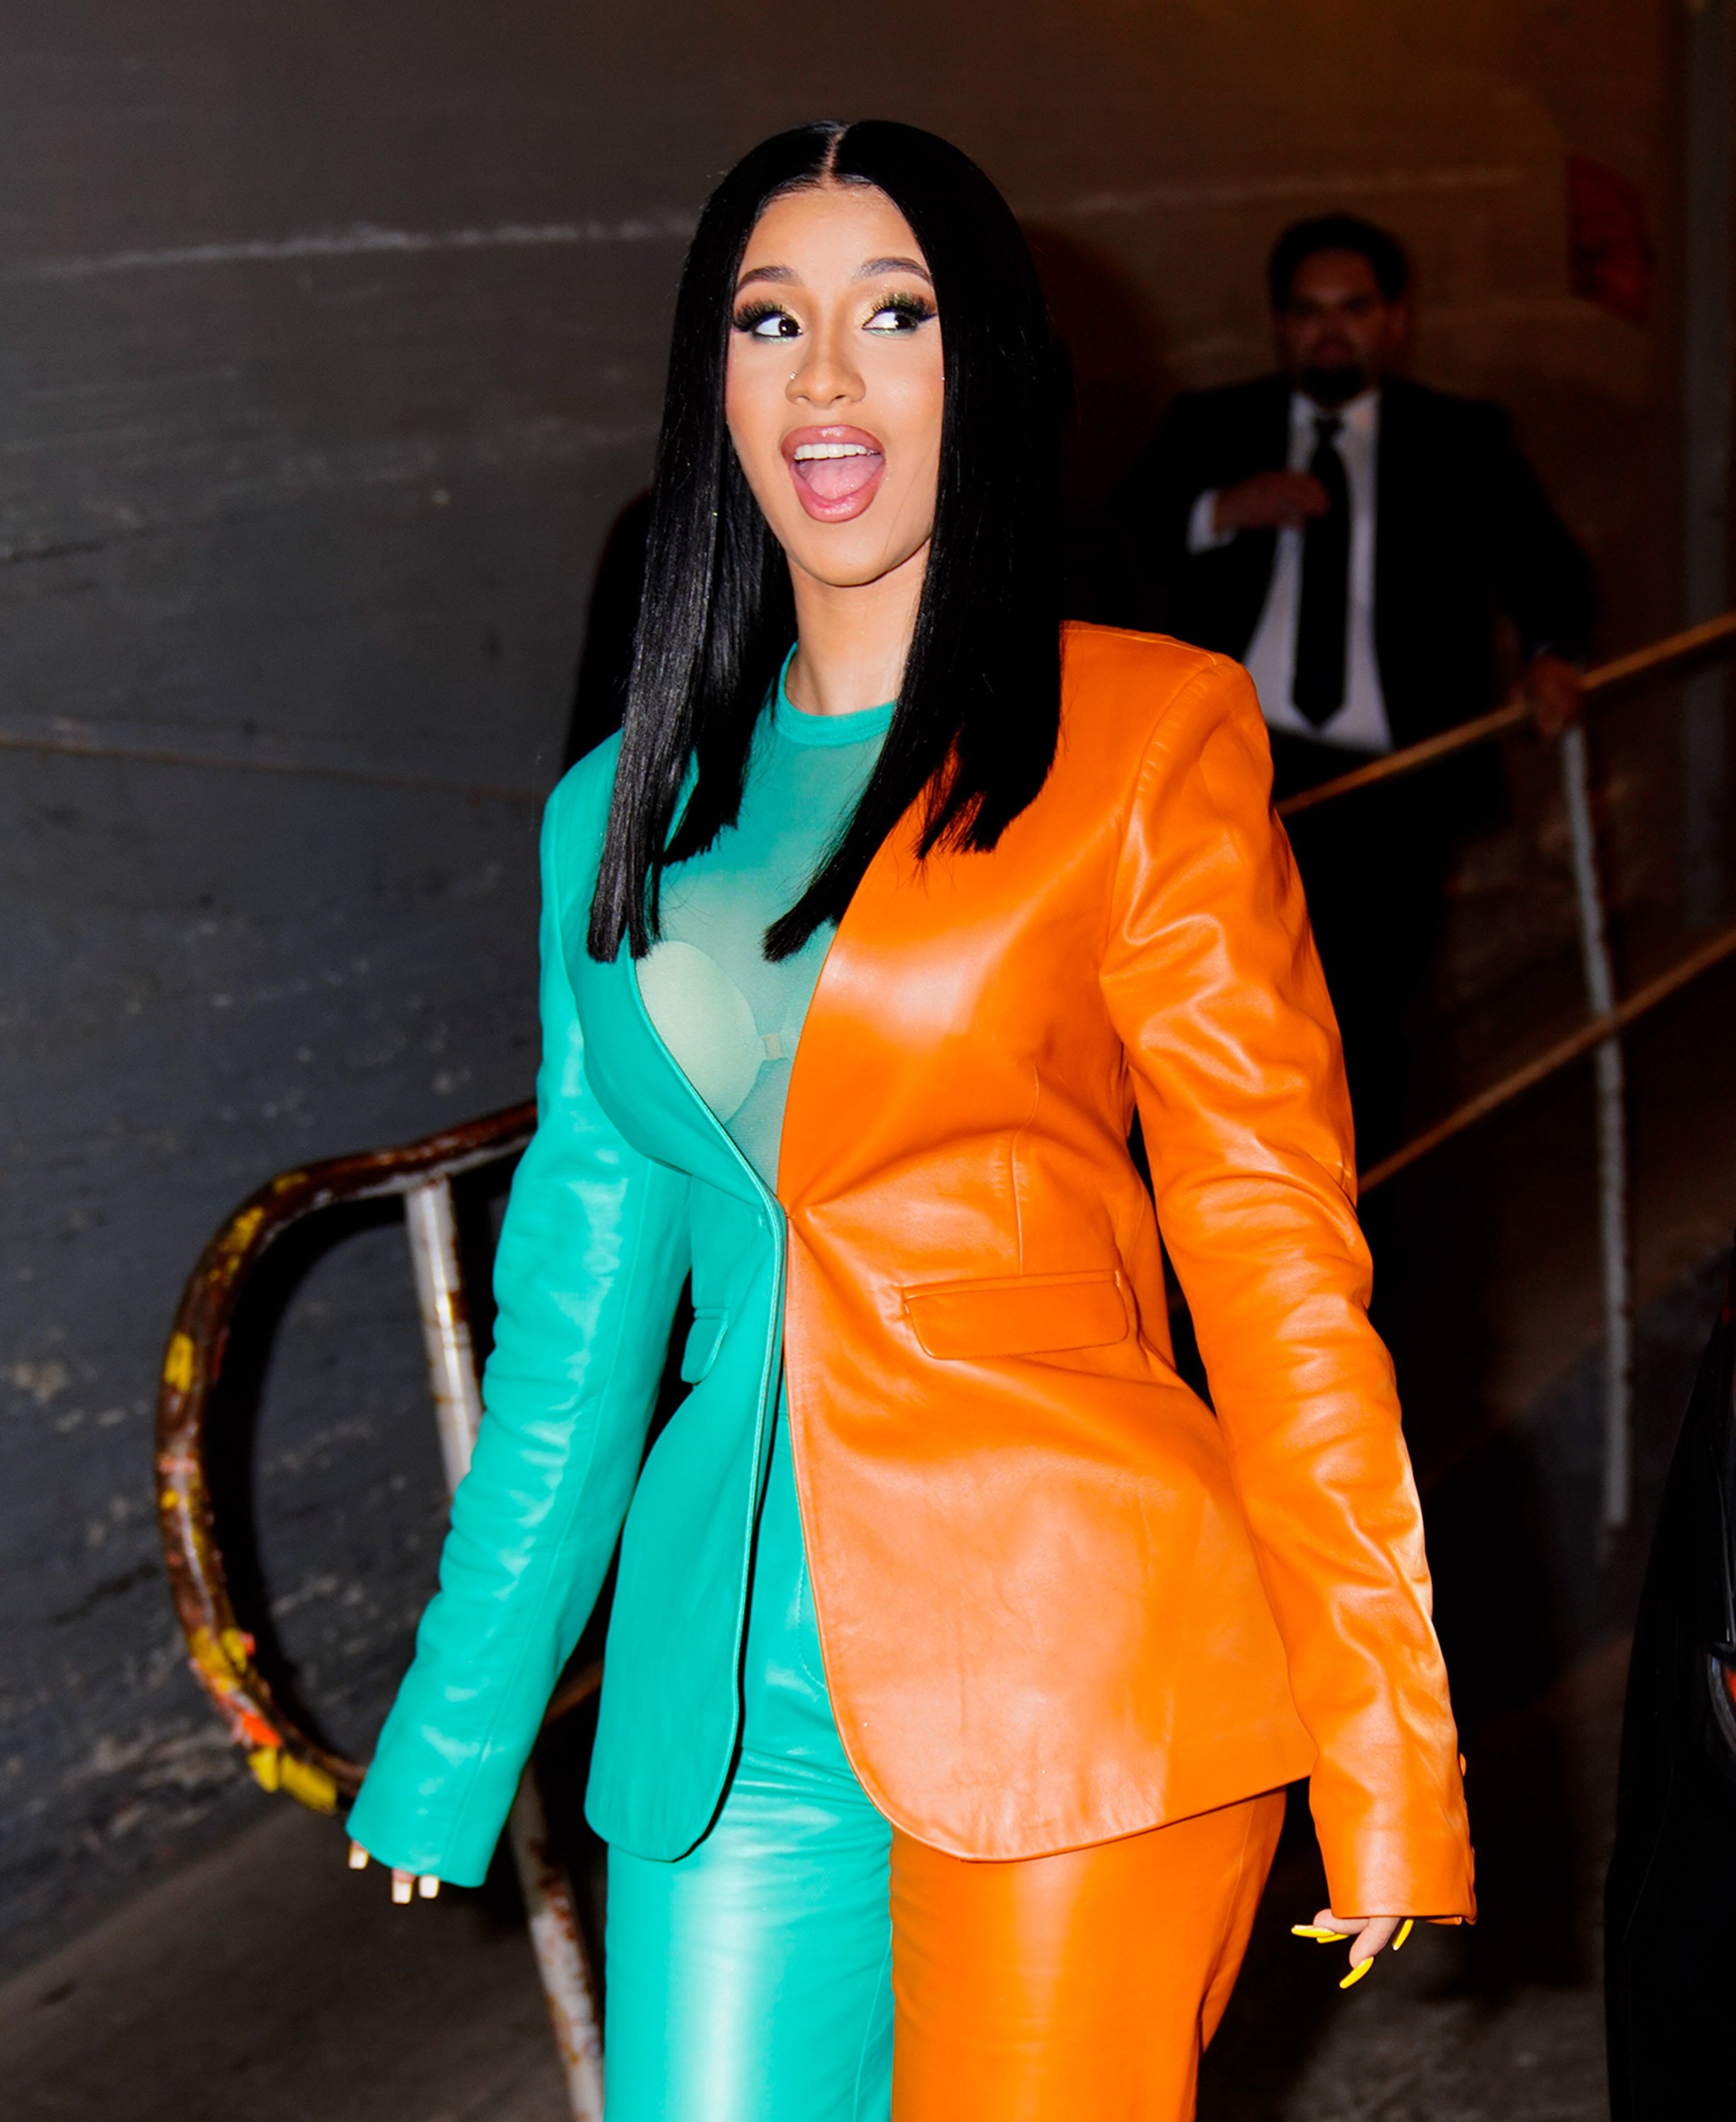 Cardi B attends a Vogue event on October 10, 2019 in New York City.  Source: Getty Images